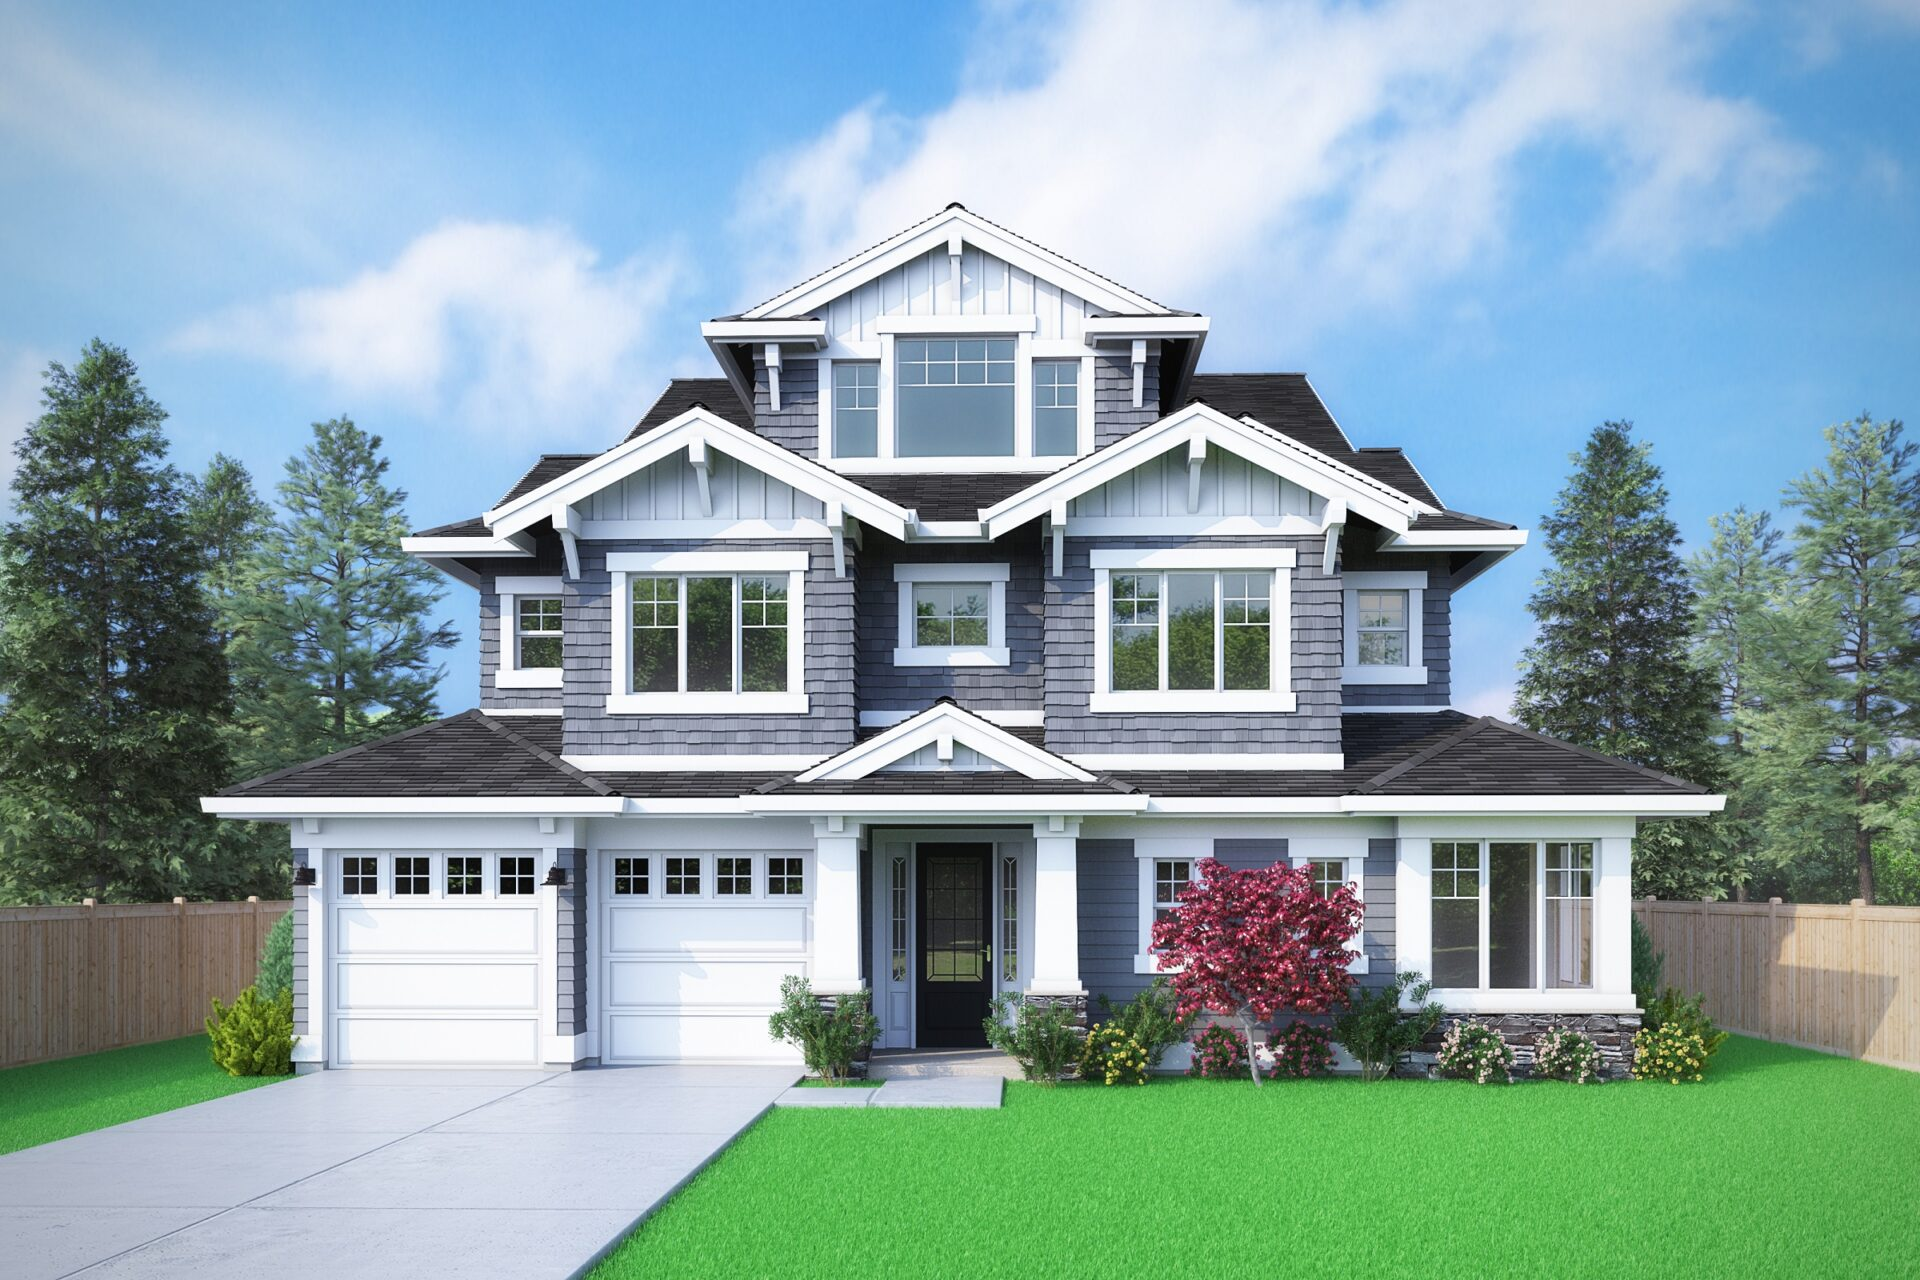 View our new luxury home construction on 16415 SE 37th CT, in Bellevue, WA from MN Custom Homes